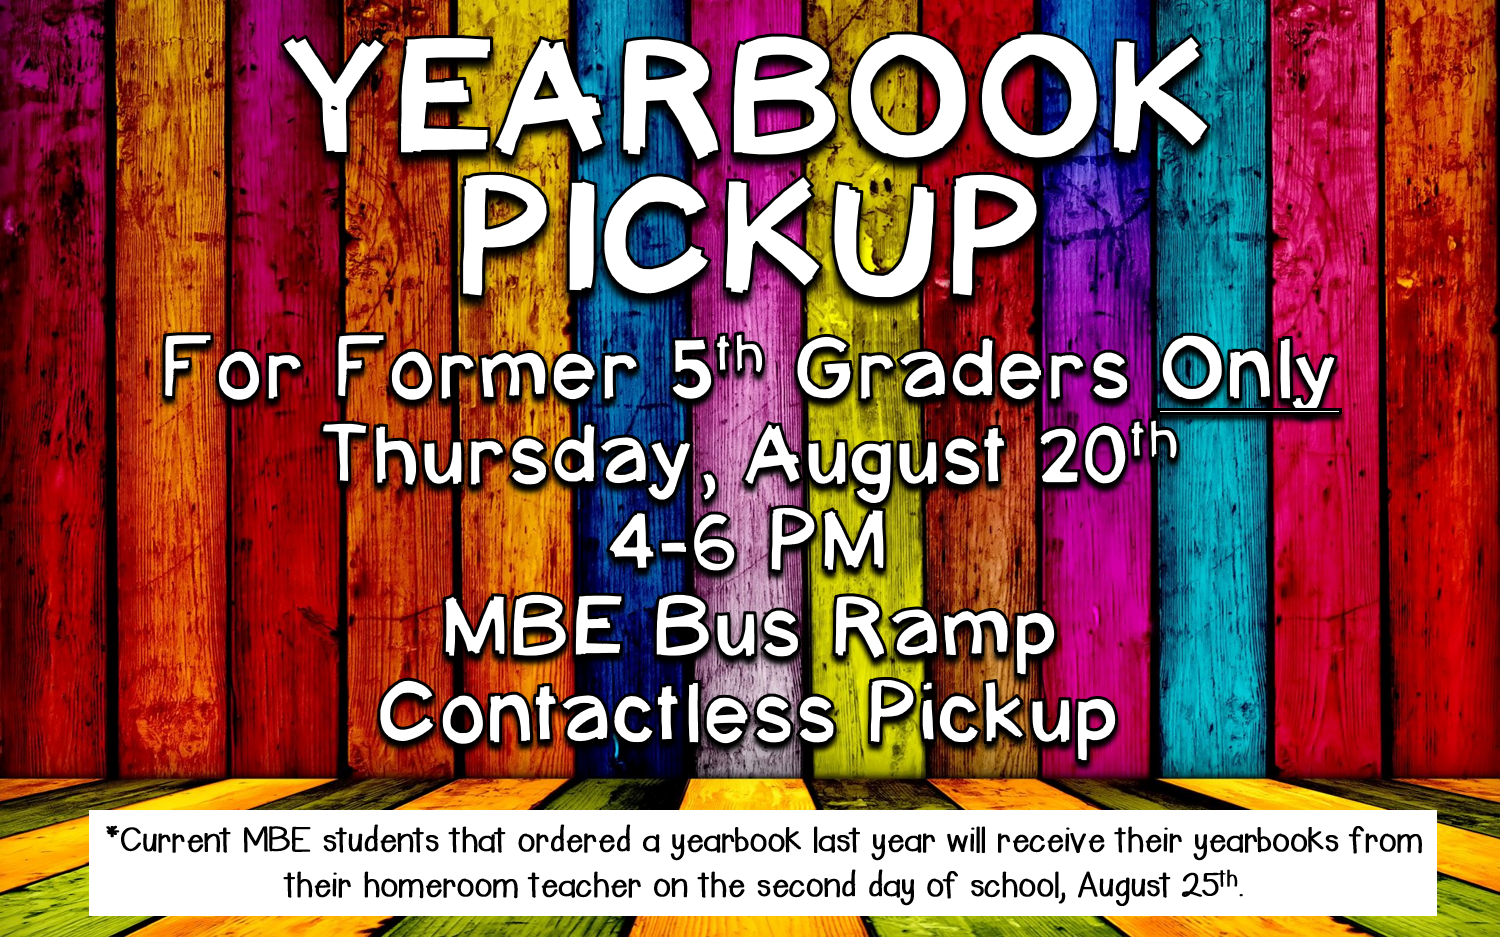 Yearbook Pickup for 2019-2020 5th Grade Students ONLY 8/20 4-6 @ MBE Bus Ramp. Current students will receive theirs 8/25.  Virtual and Former students will receive books after 8/25, Please check back for more details!